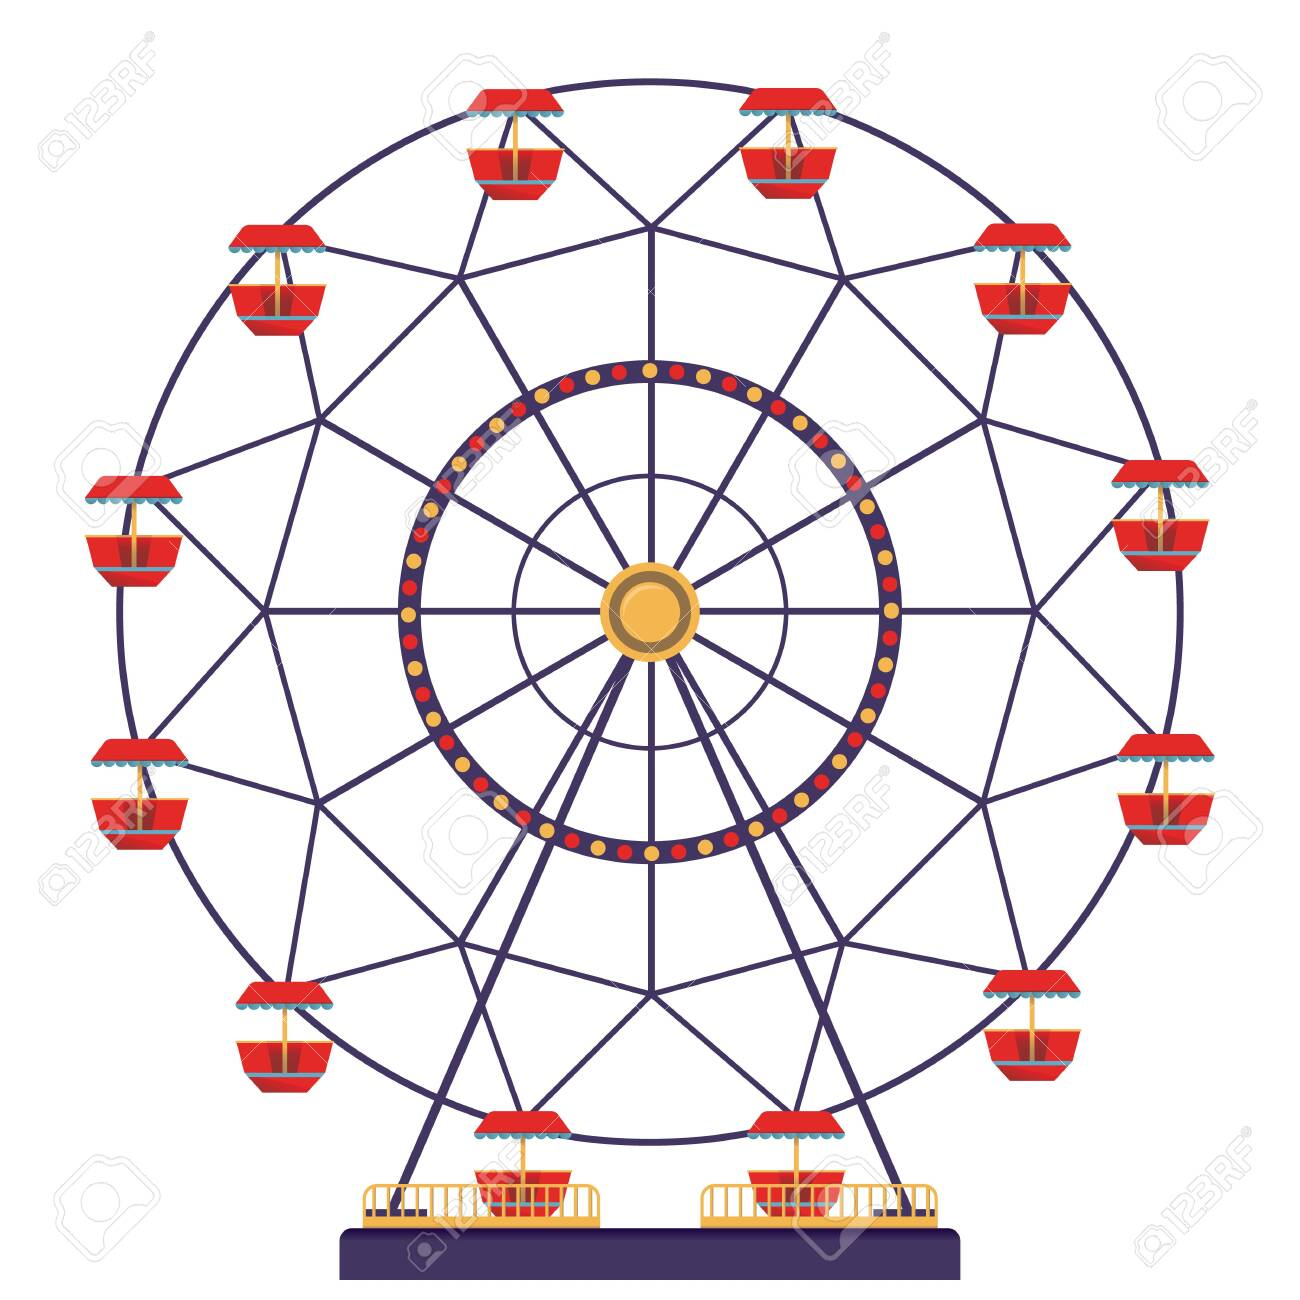 Panoramic wheel isolated on white background. Carnival icon in flat style.Vector illustration. - 128248727